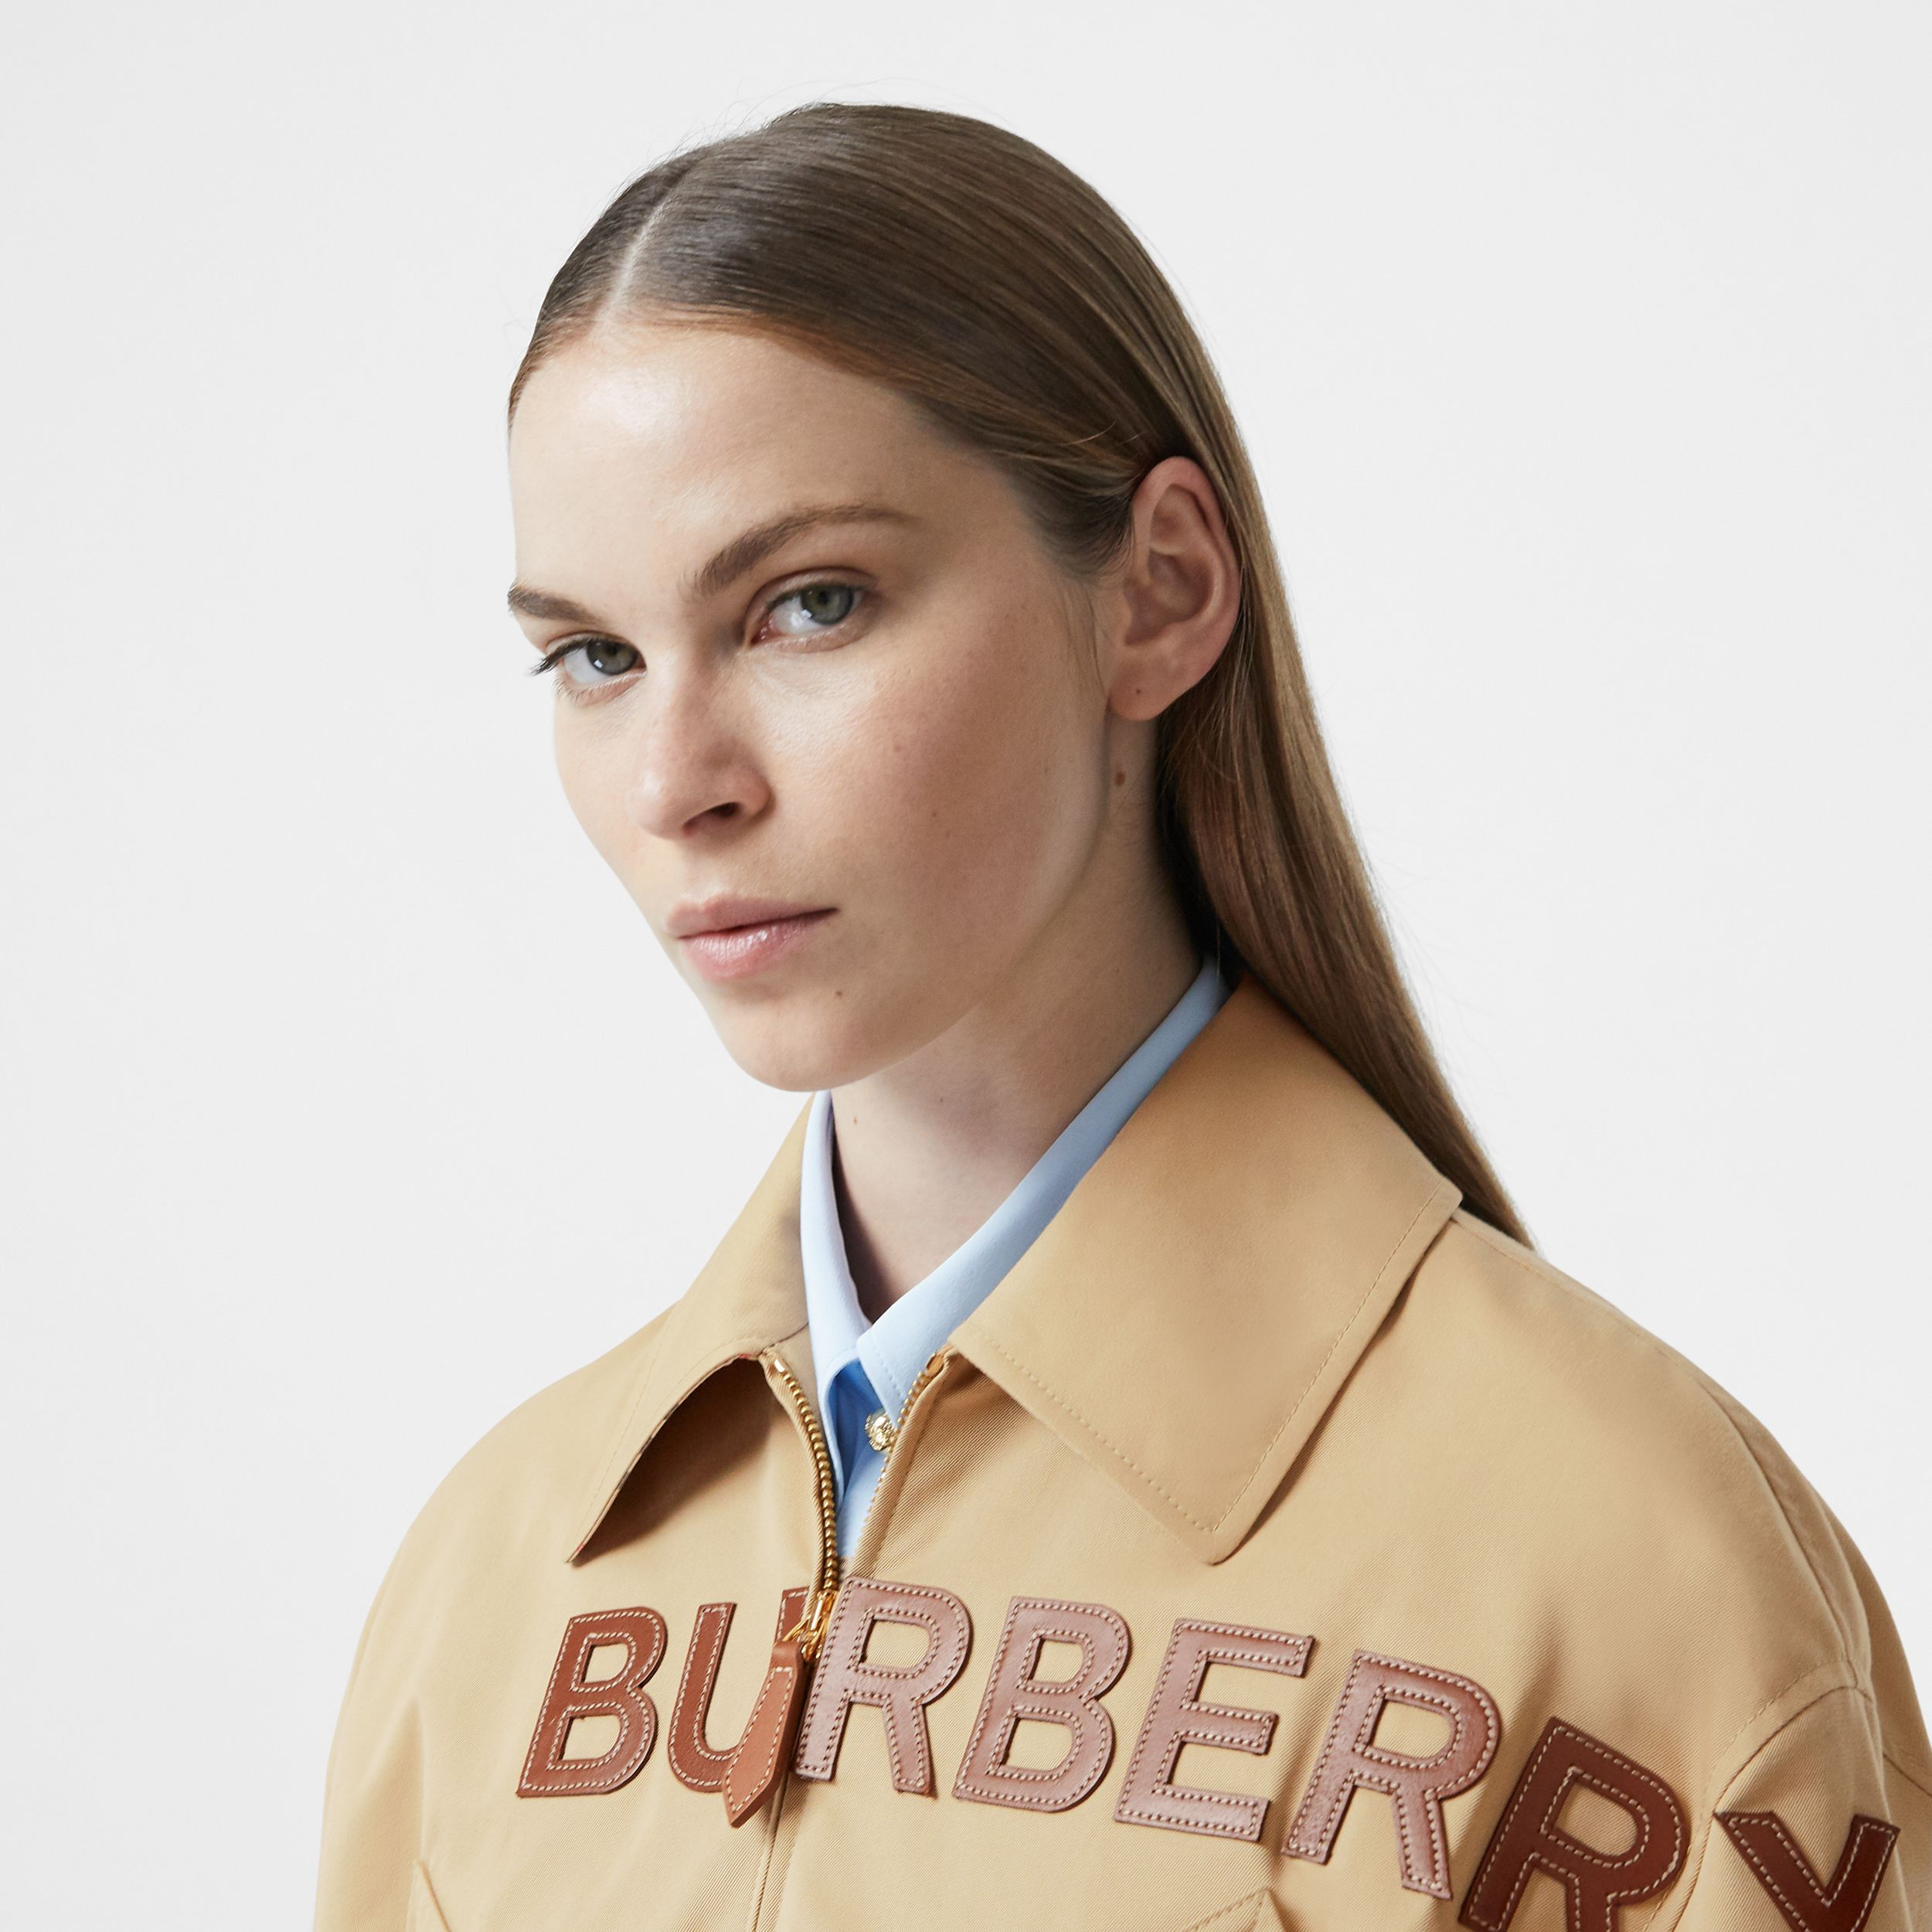 Leather Horseferry Appliqué Cotton Riding Jacket in Honey - Women | Burberry Australia - 2